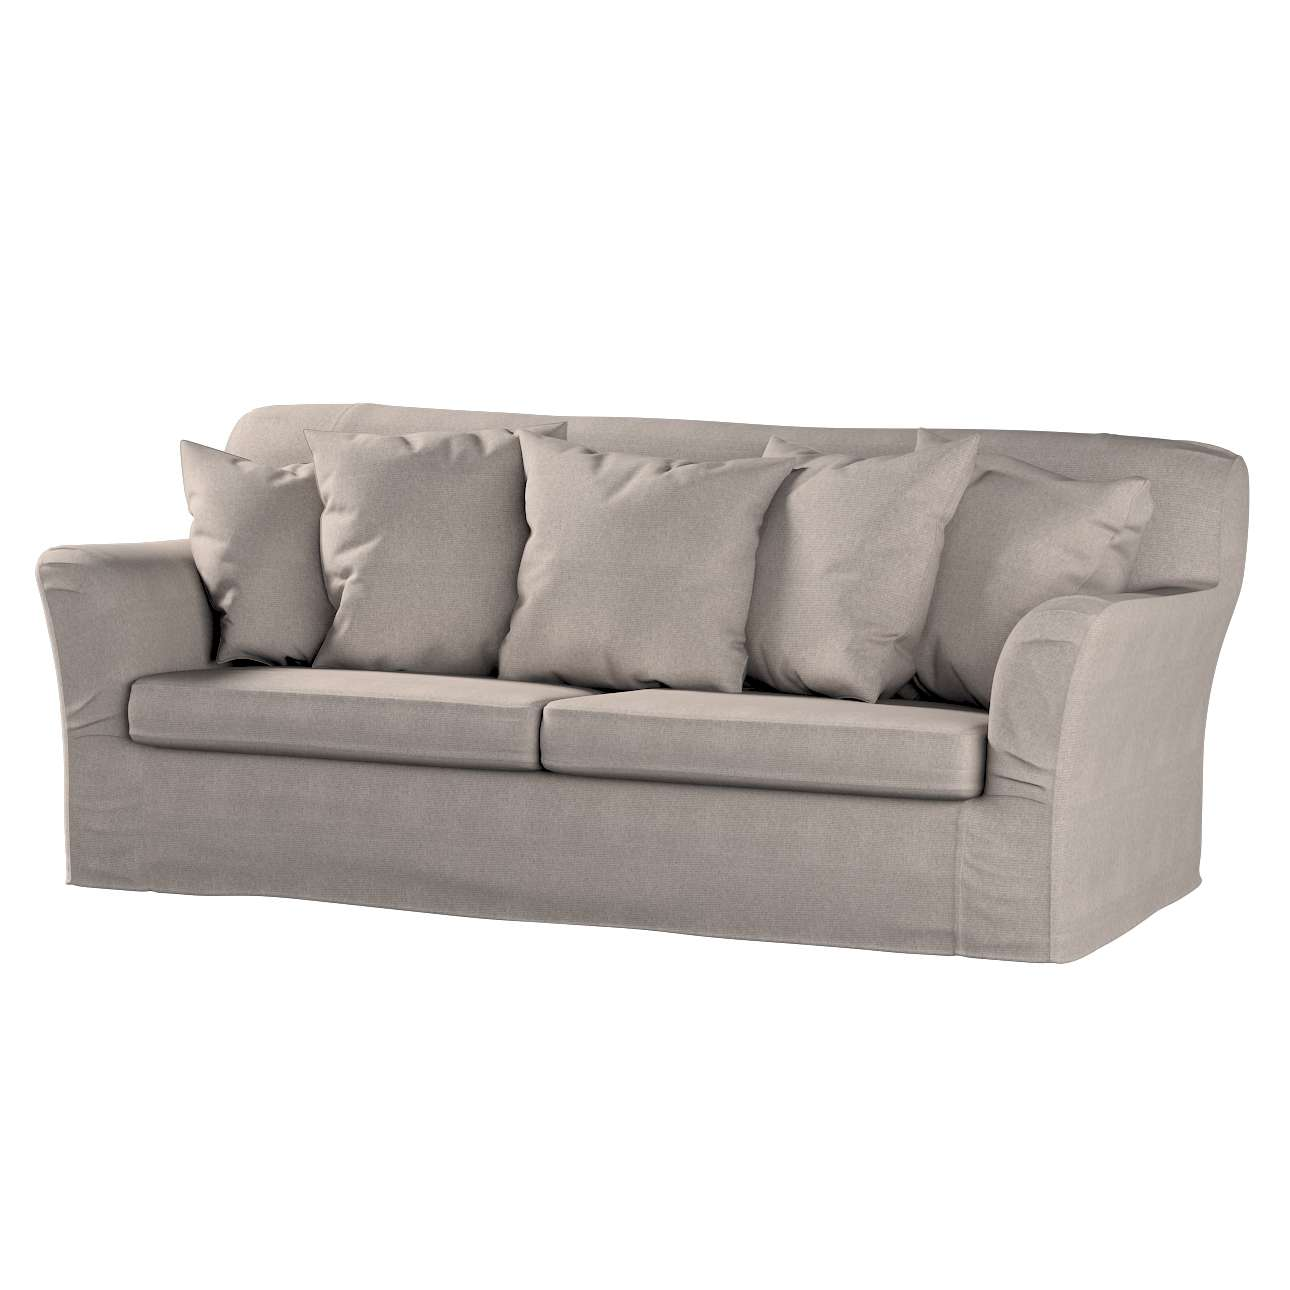 Tomelilla sofa bed cover Tomelilla sofa bed in collection Etna, fabric: 705-09